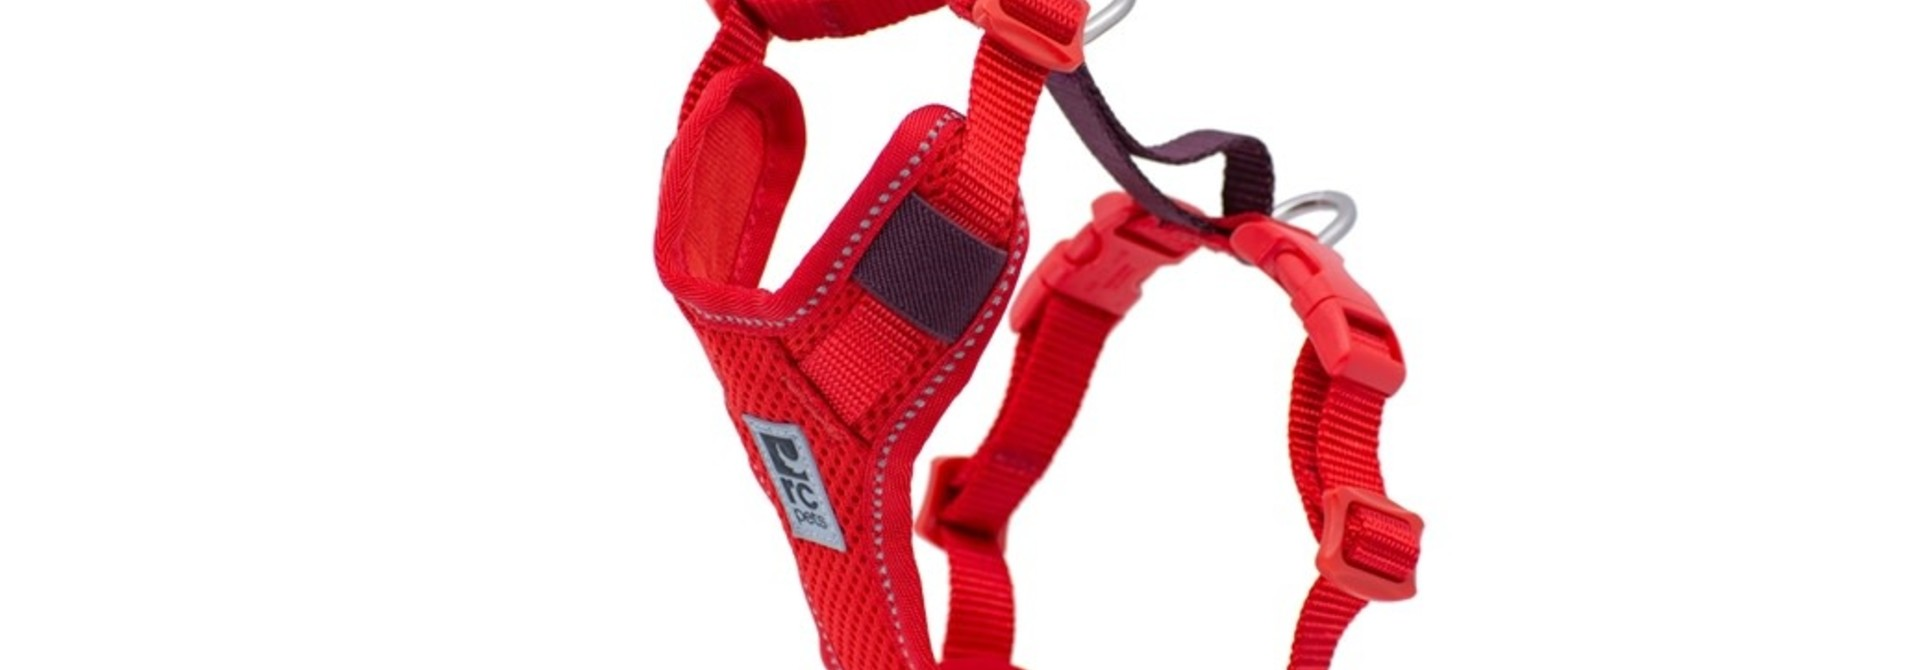 Moto Control Harness Large Gogi Berry/Burgundy